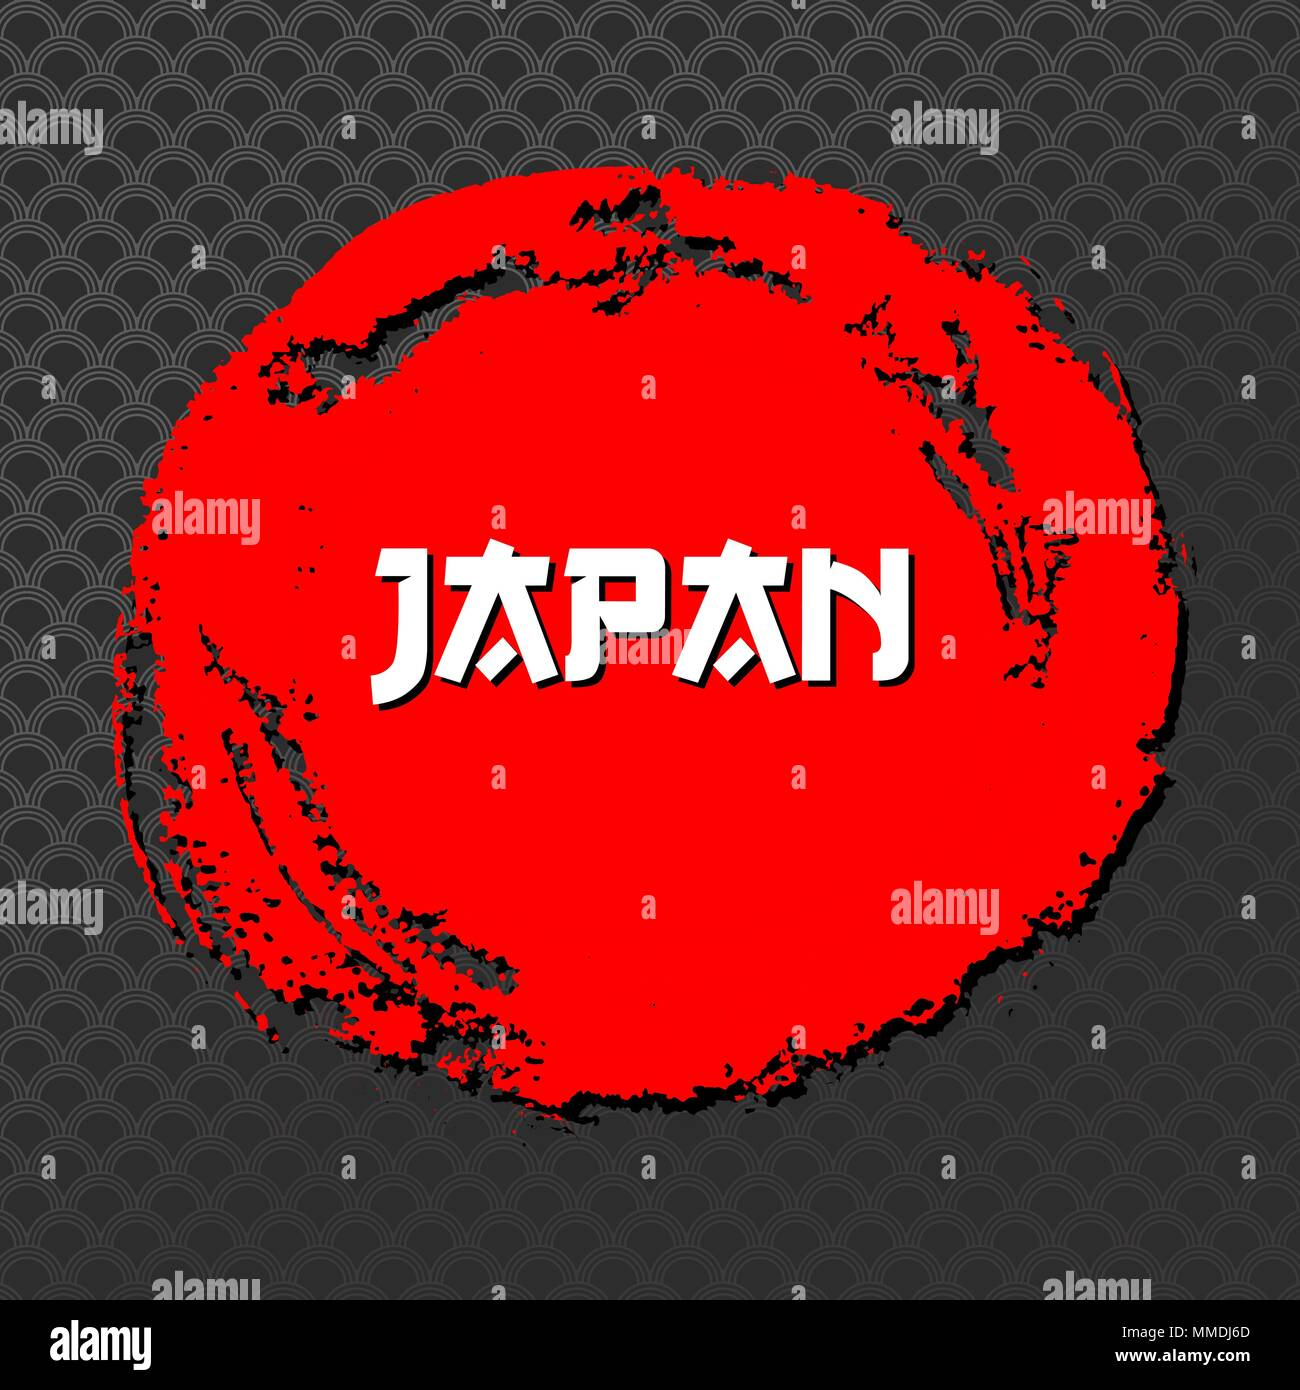 Japan Red Sign Vector. Grunge Red circle Stamp On Black Background. Chinese Ink Or Rubber Textured Sun Poster Illustration. Stock Vector